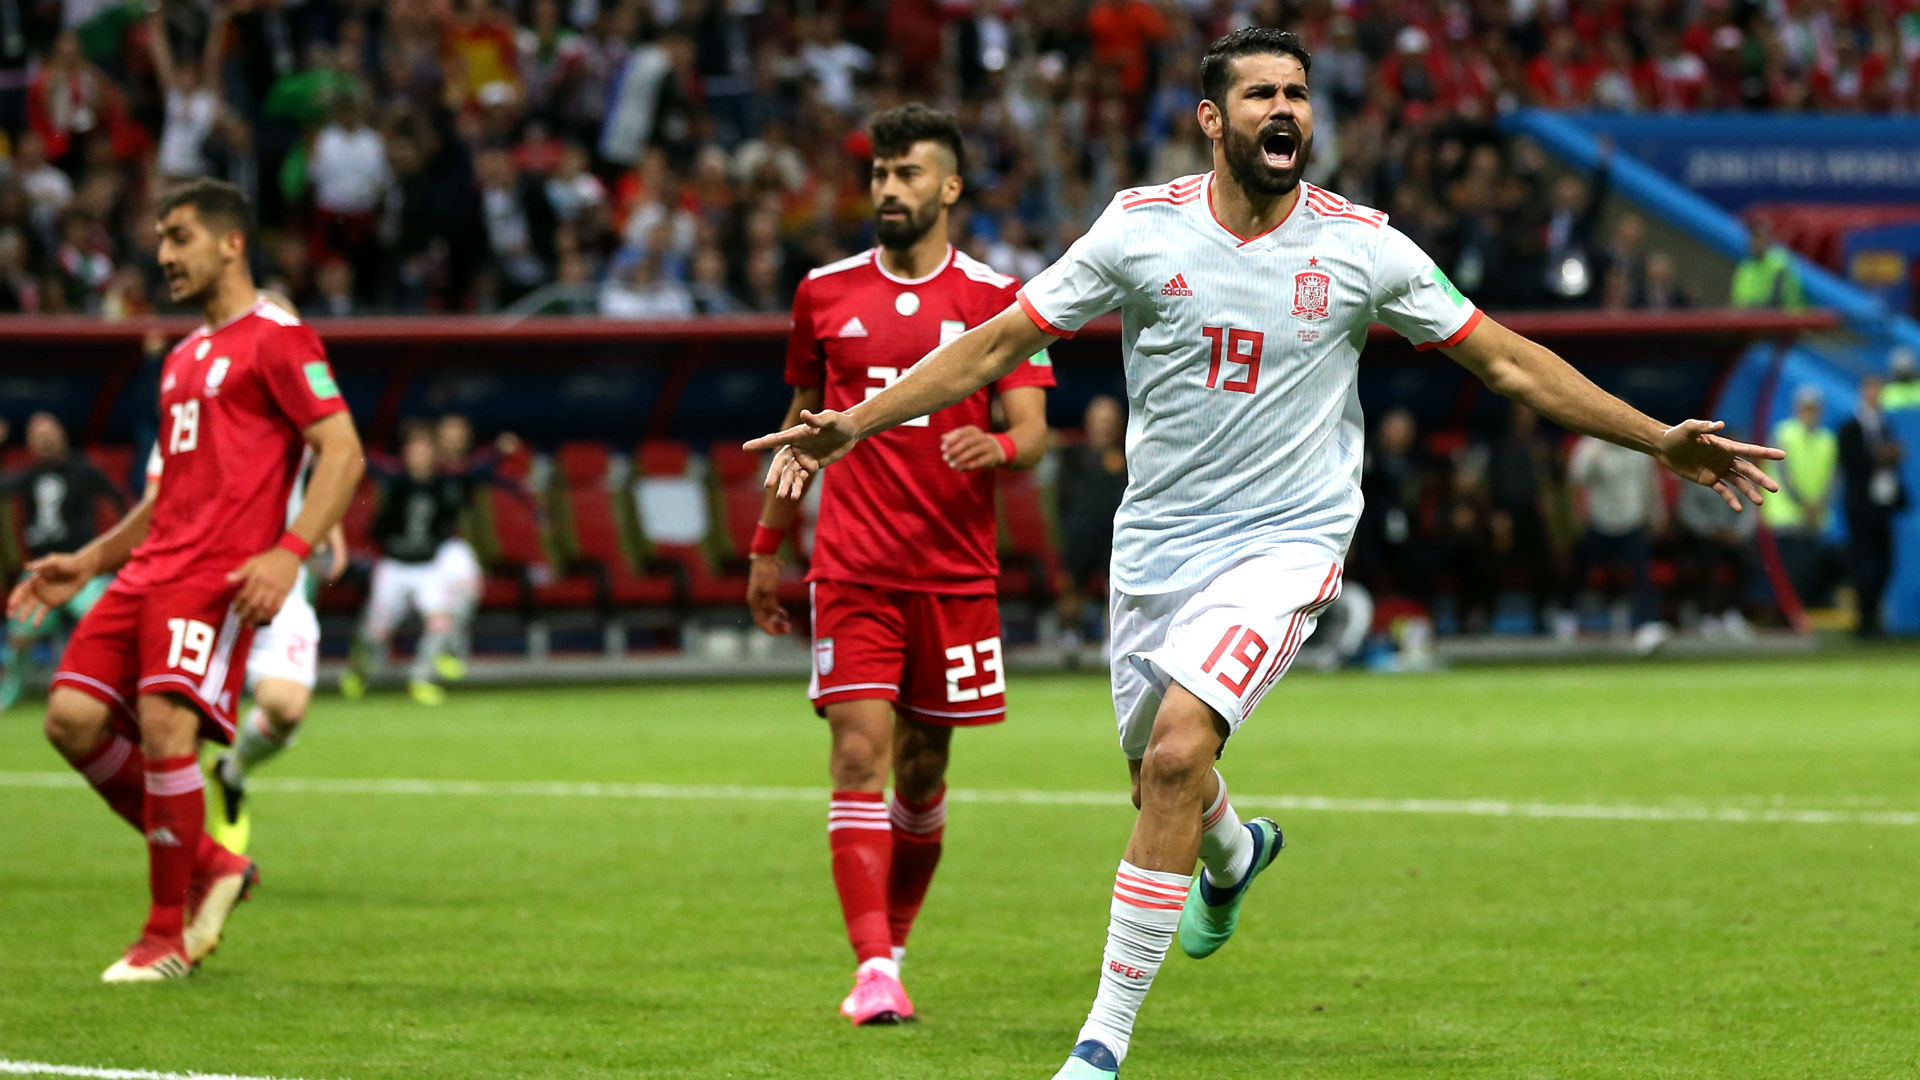 Spain beat Iran 1-0 to move closer to knockout stage